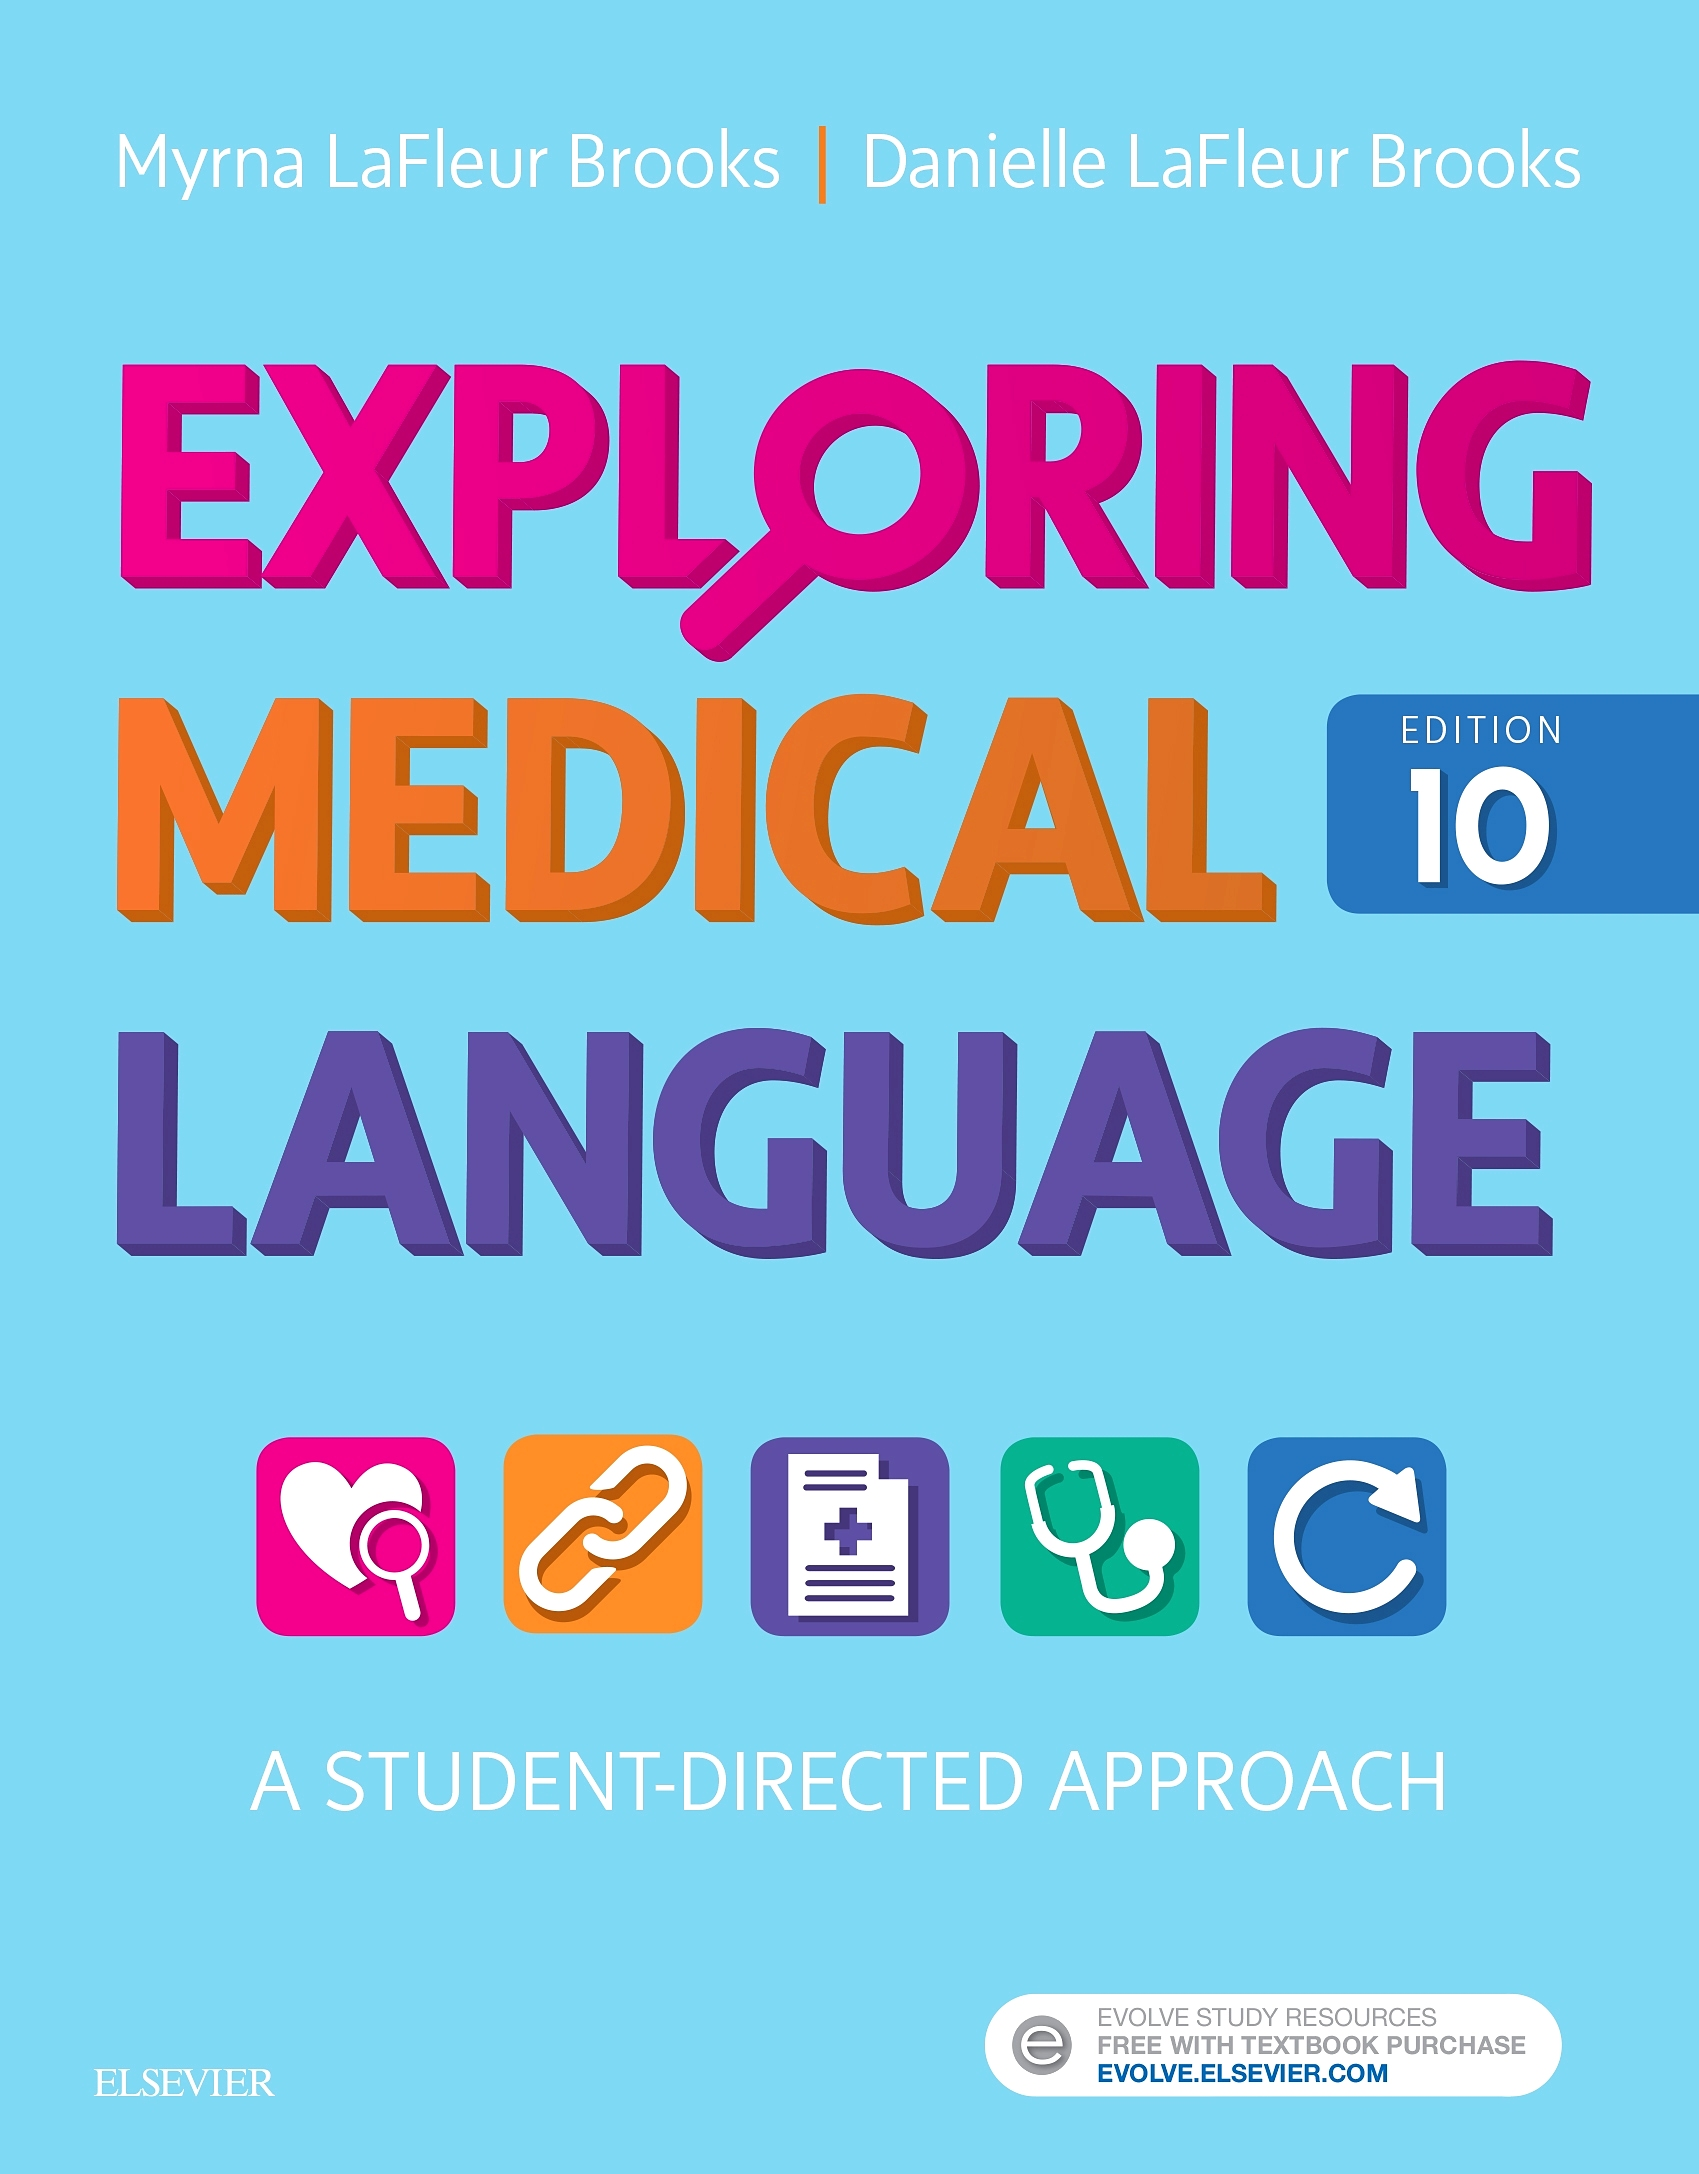 Evolve Resources for Exploring Medical Language, 10th Edition